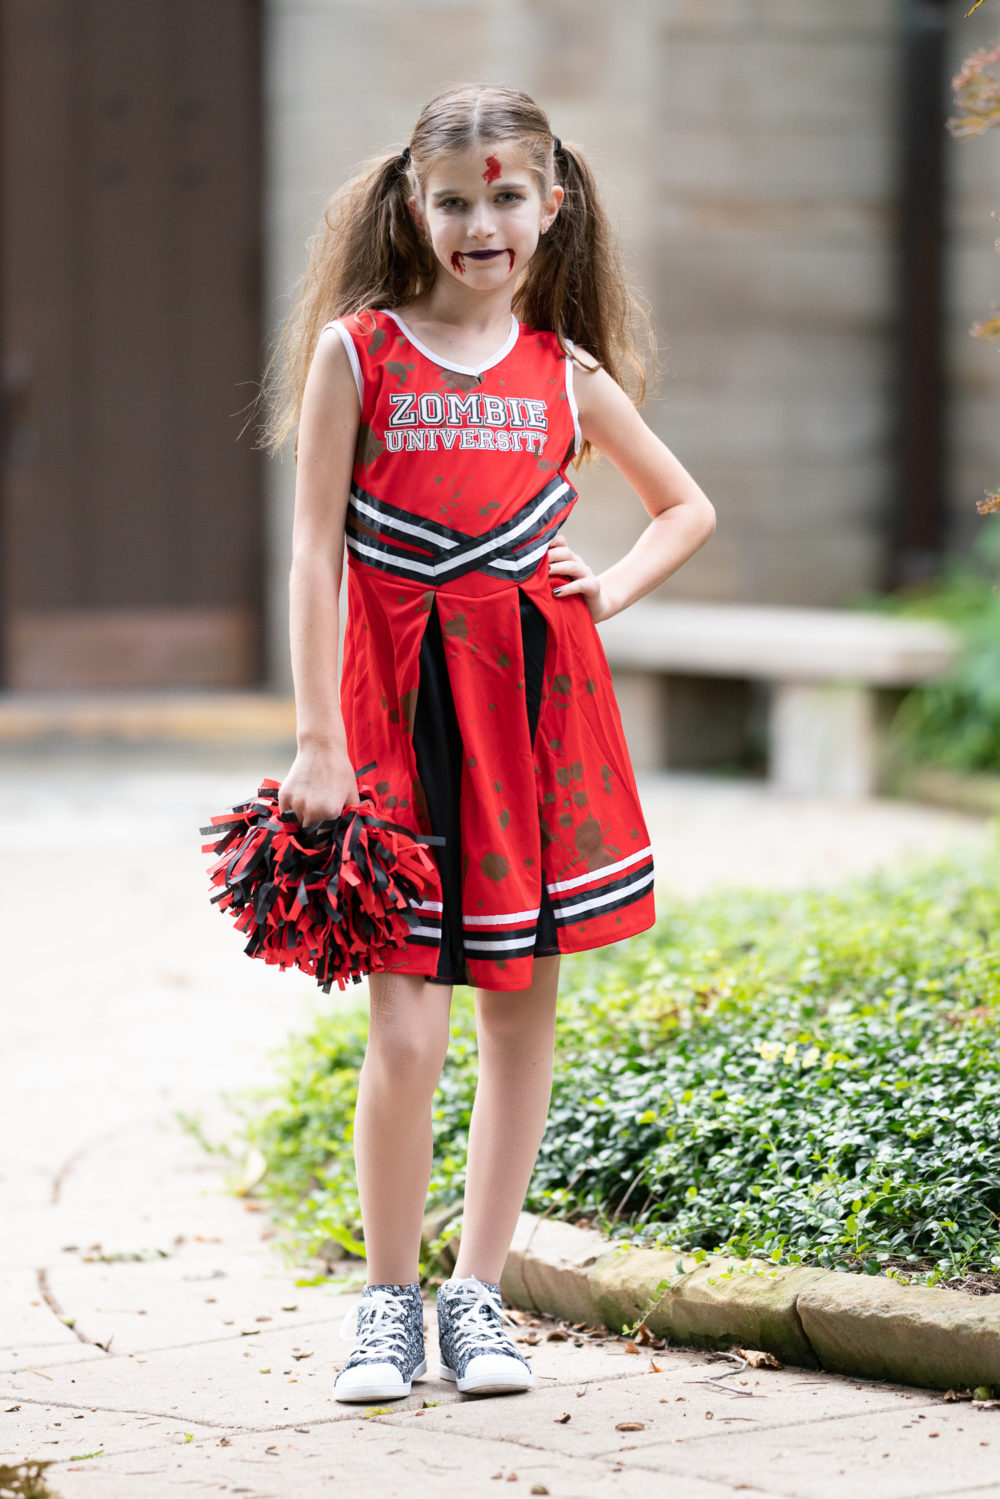 Zombie Cheerleader Halloween Costume For Girls.Halloween Ready With Chasing Fireflies The Blue Hydrangeas A